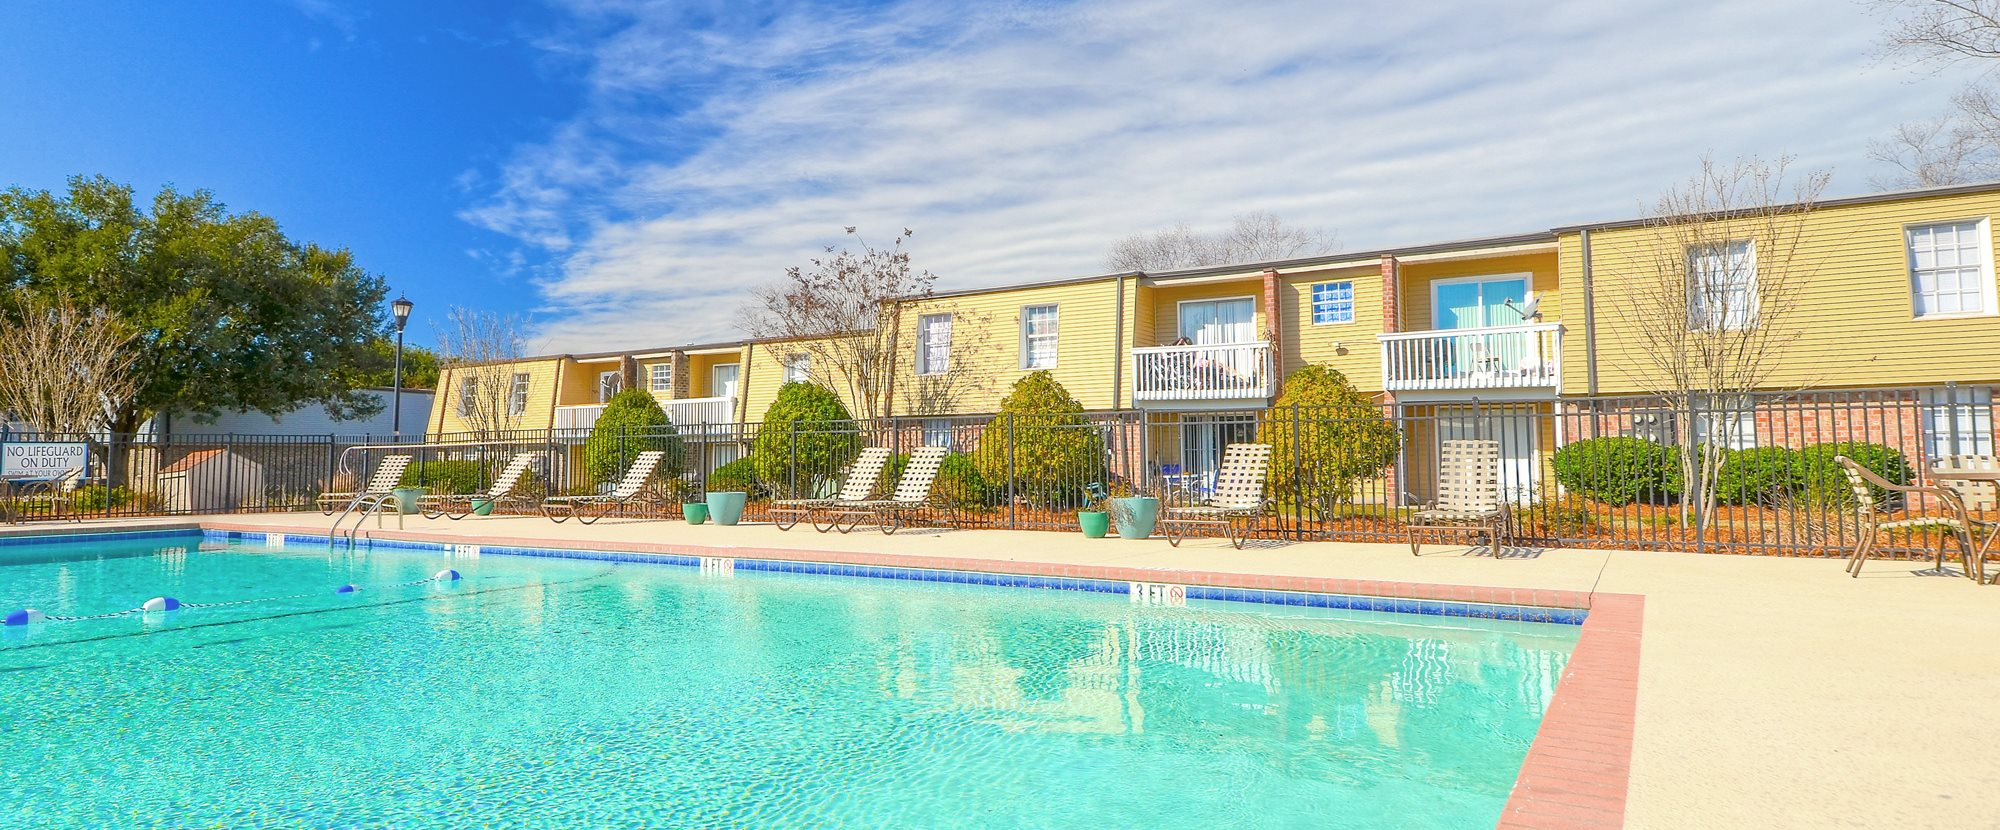 Cypress River Apartments Reviews